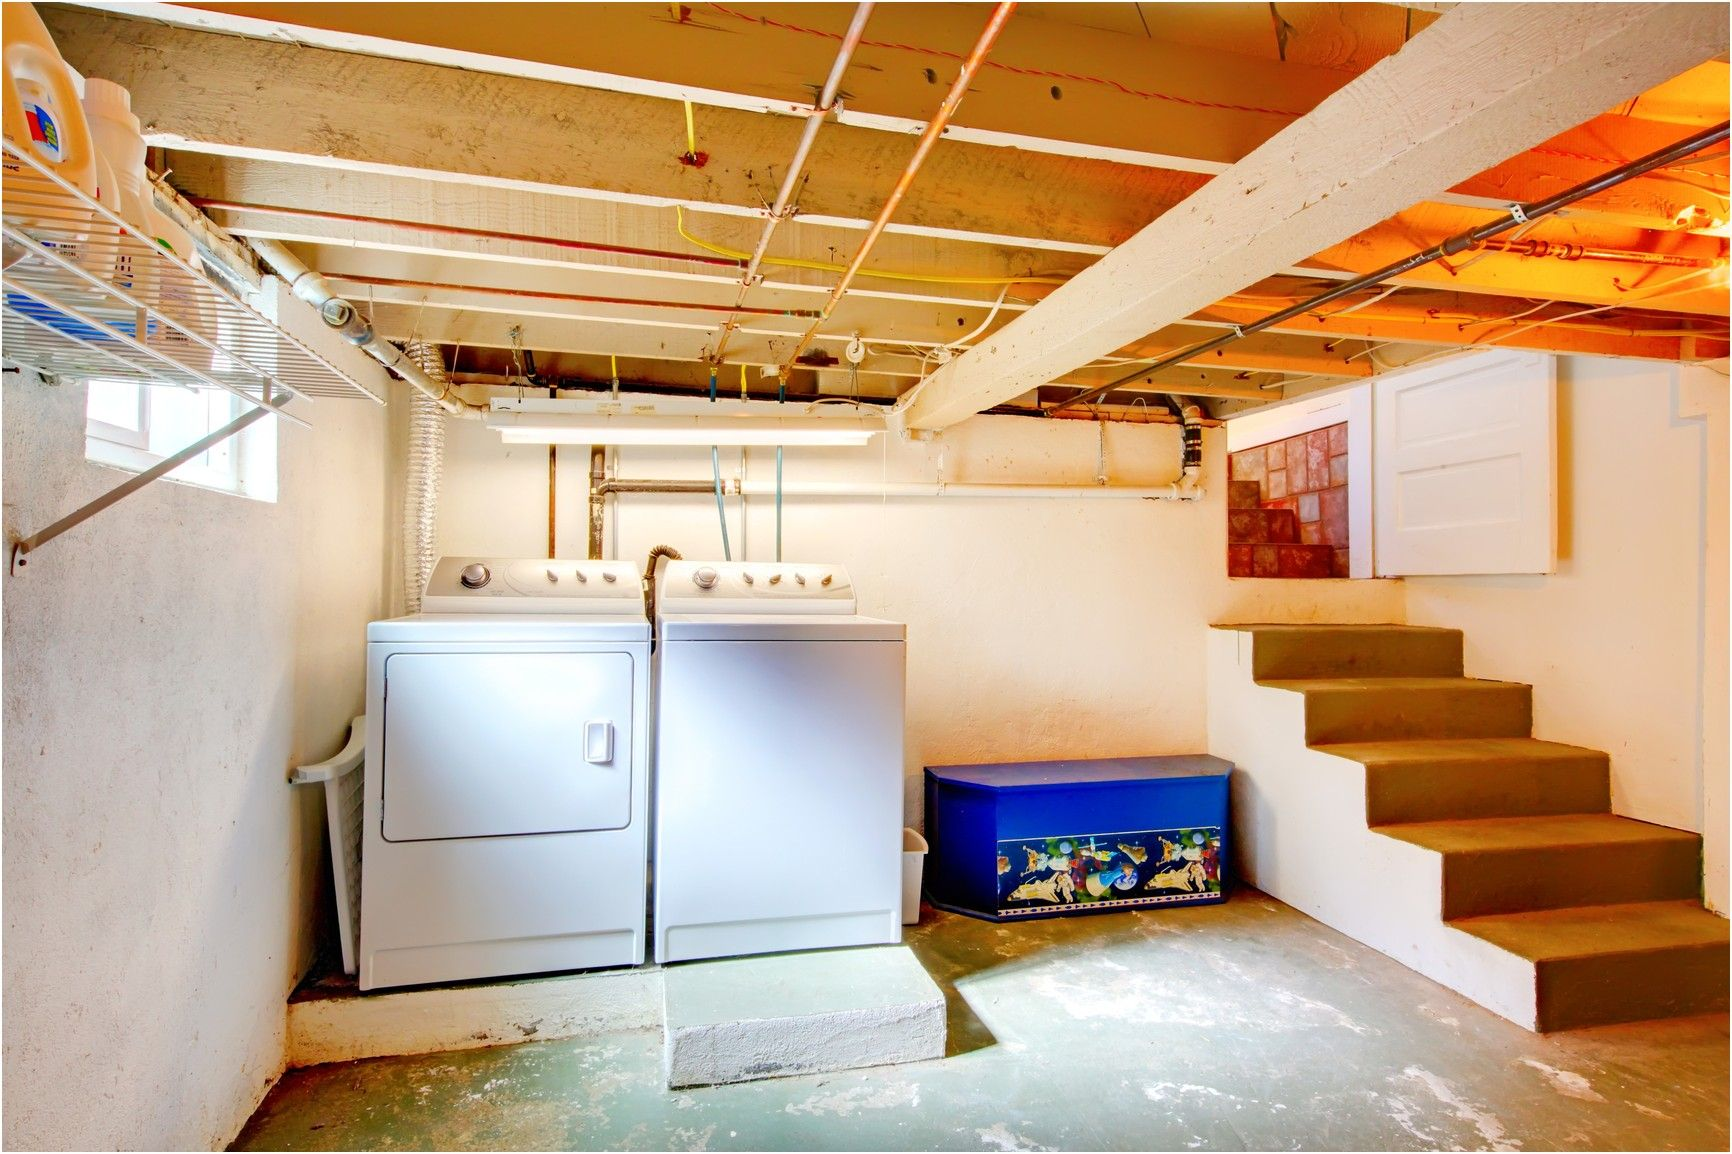 Cost of basement remodel basement cost estimator from - Basement bathroom cost calculator ...